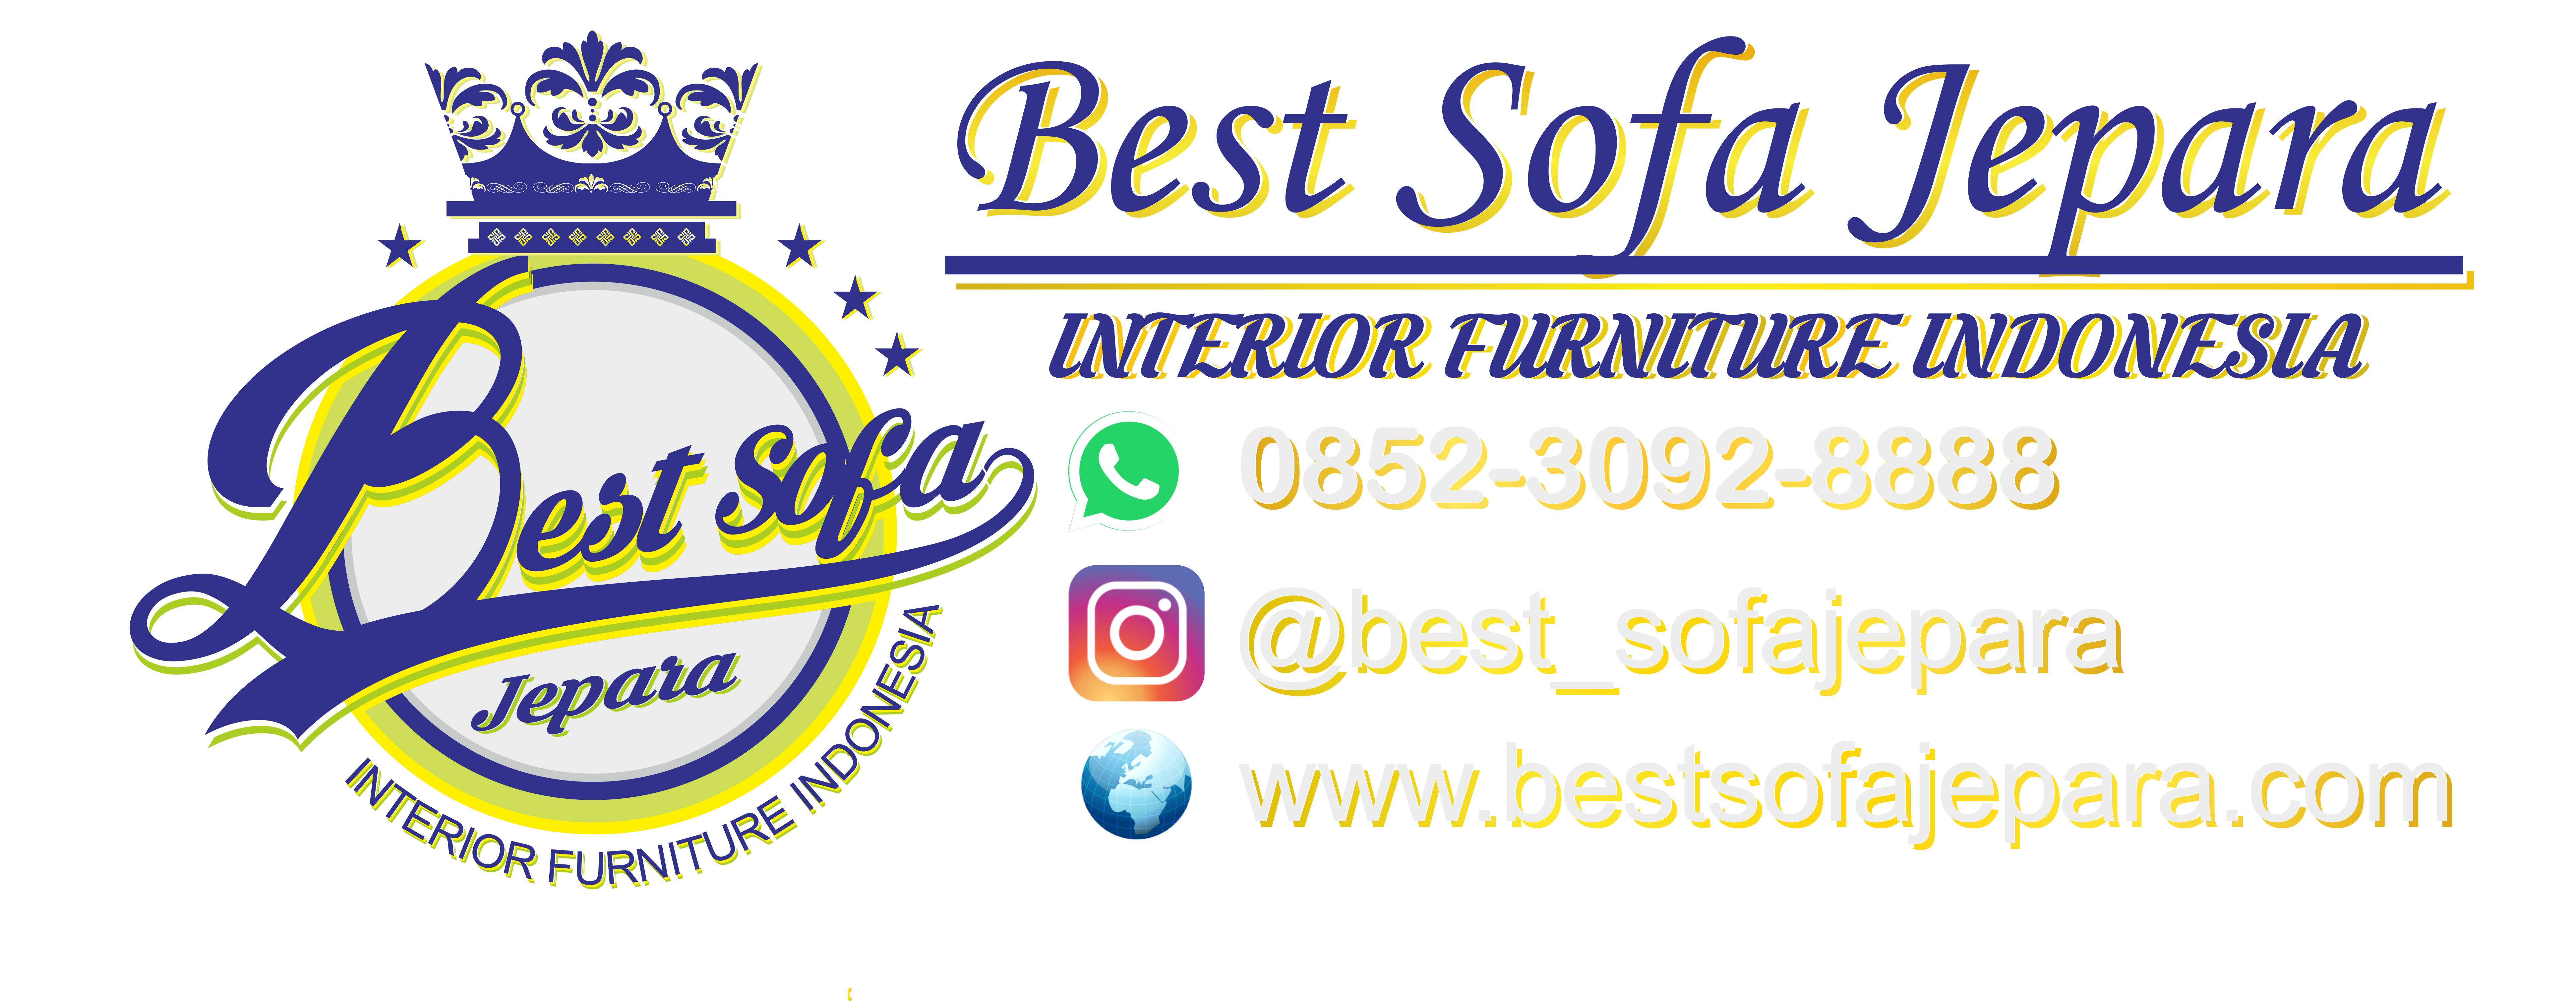 Best Sofa Jepara